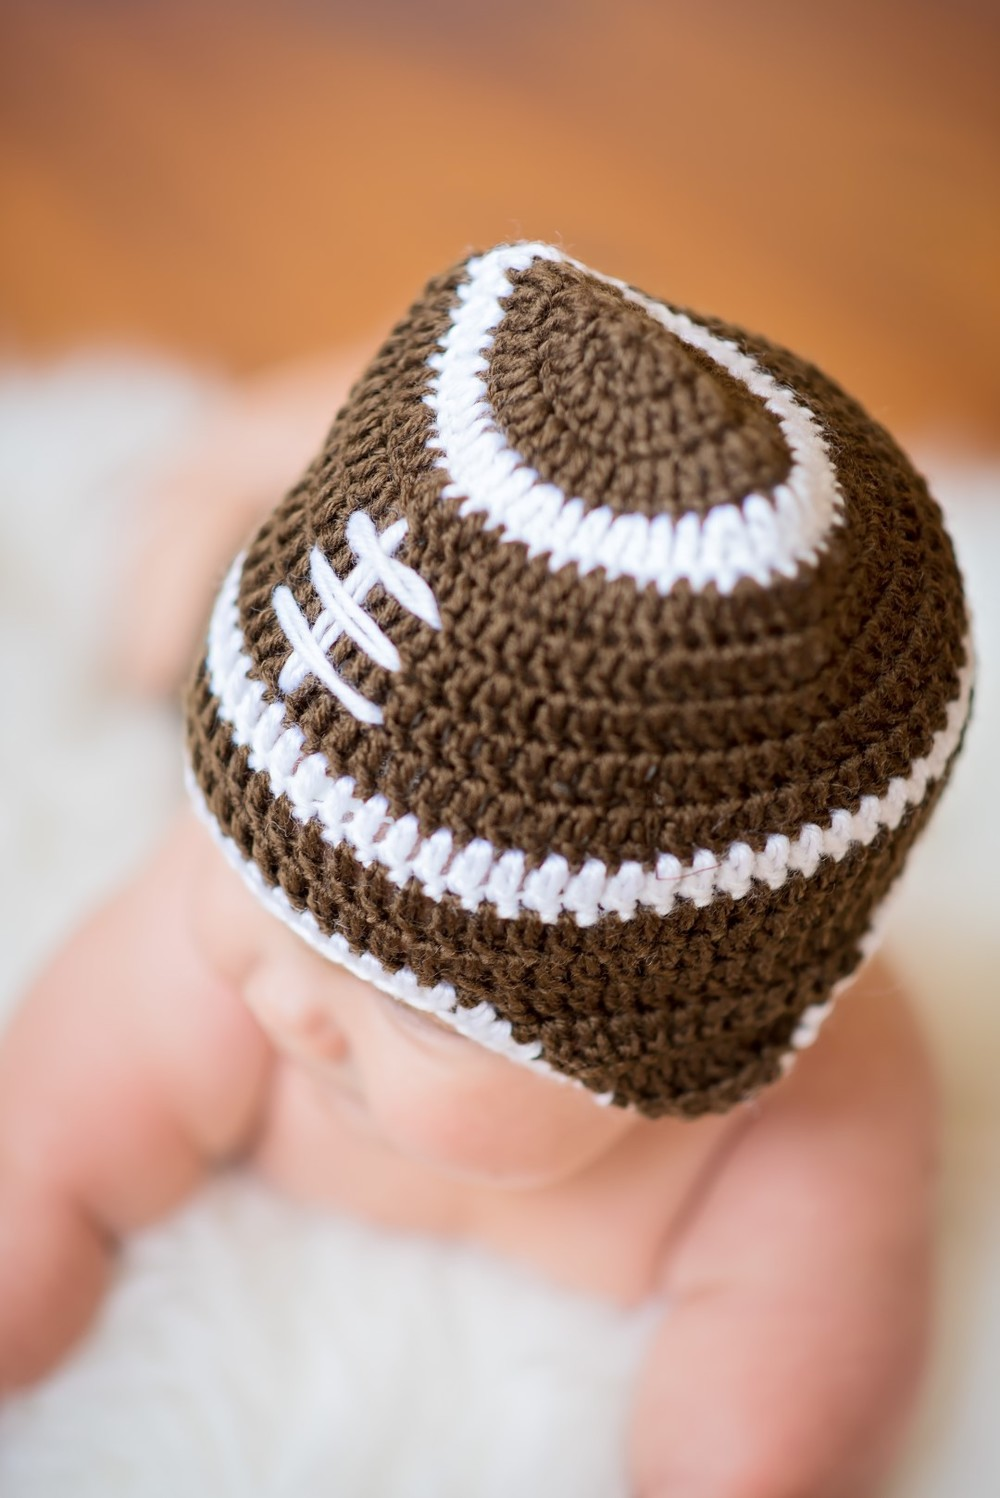 baby camden football 7.jpg